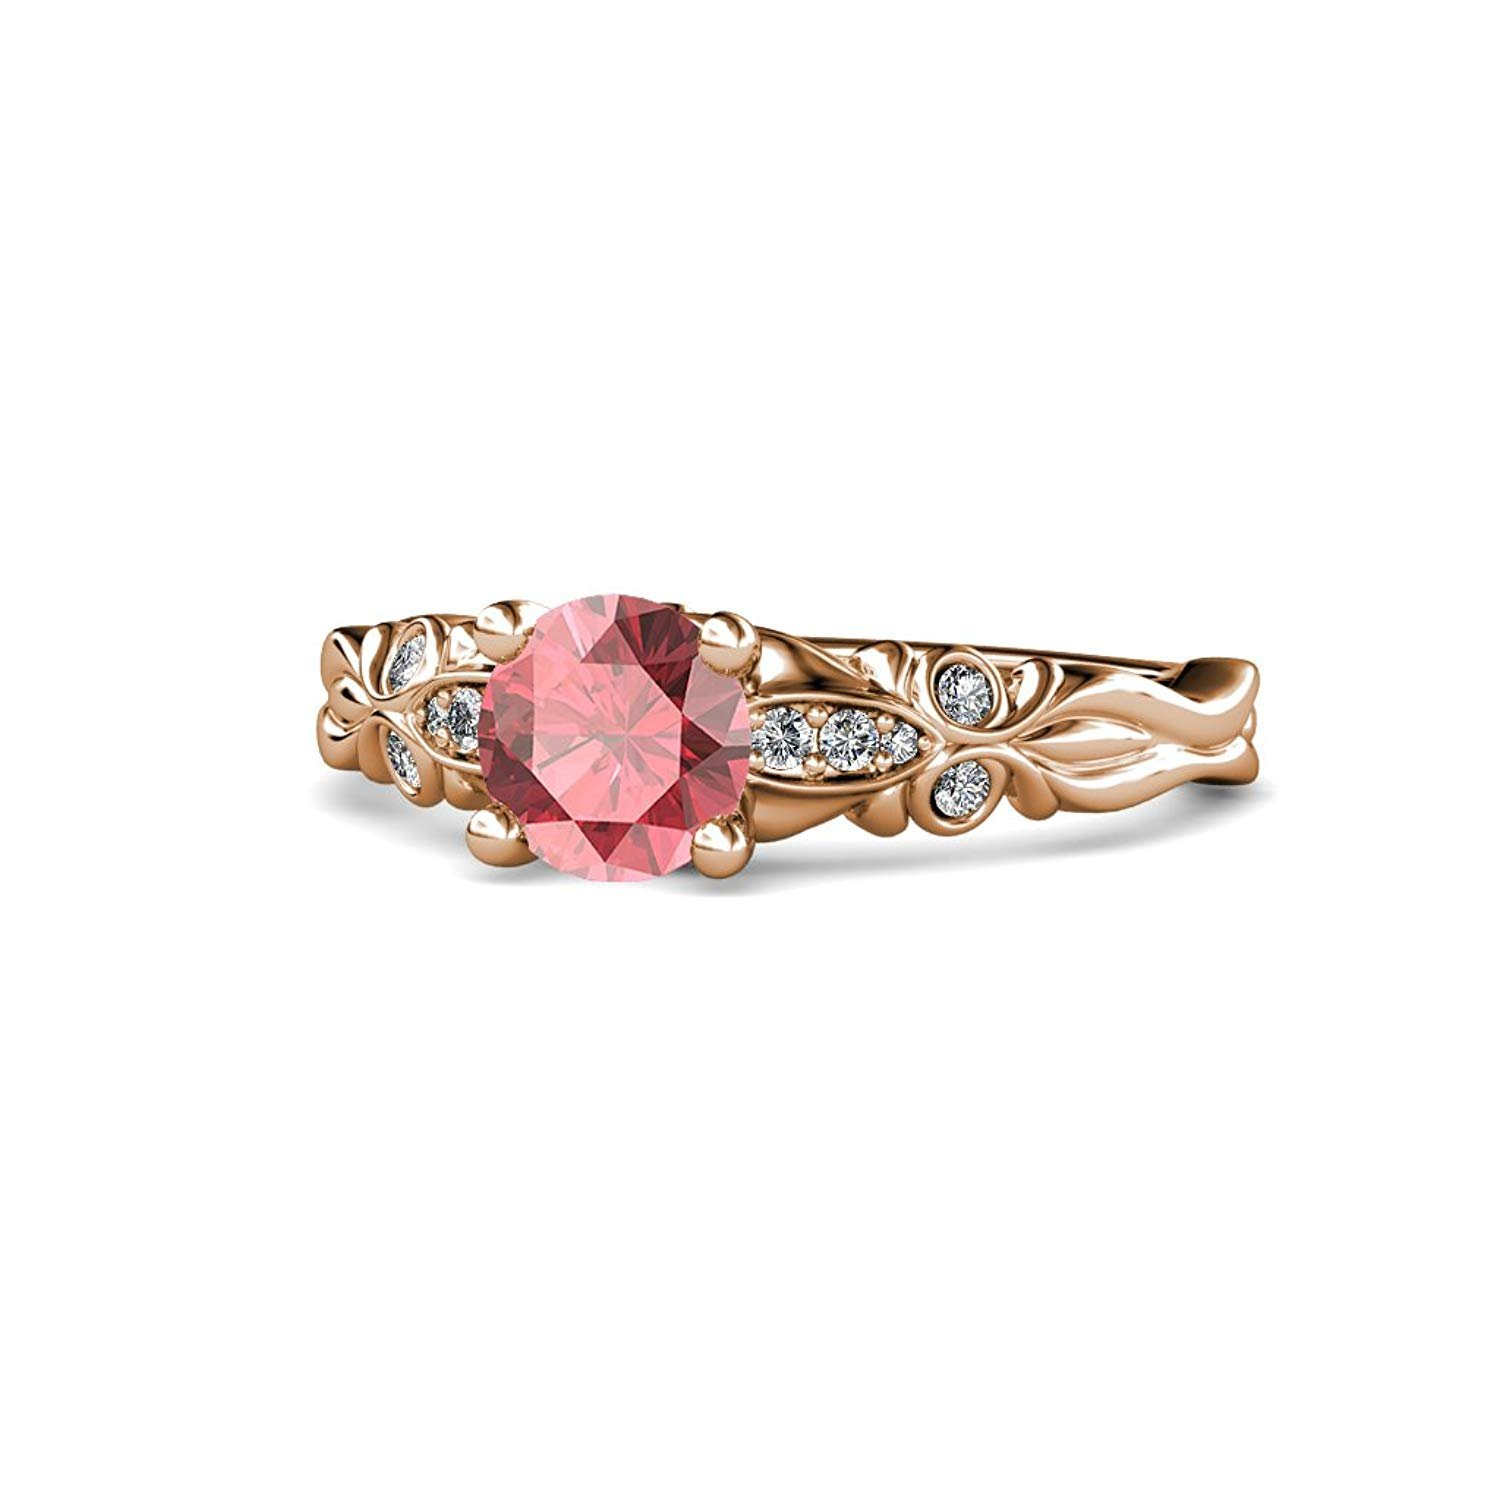 Pink Tourmaline and Diamond (SI2-I1, G-H) Butterfly Engagement Ring 1.09 ct tw in 14K Rose Gold.size 9 by TriJewels